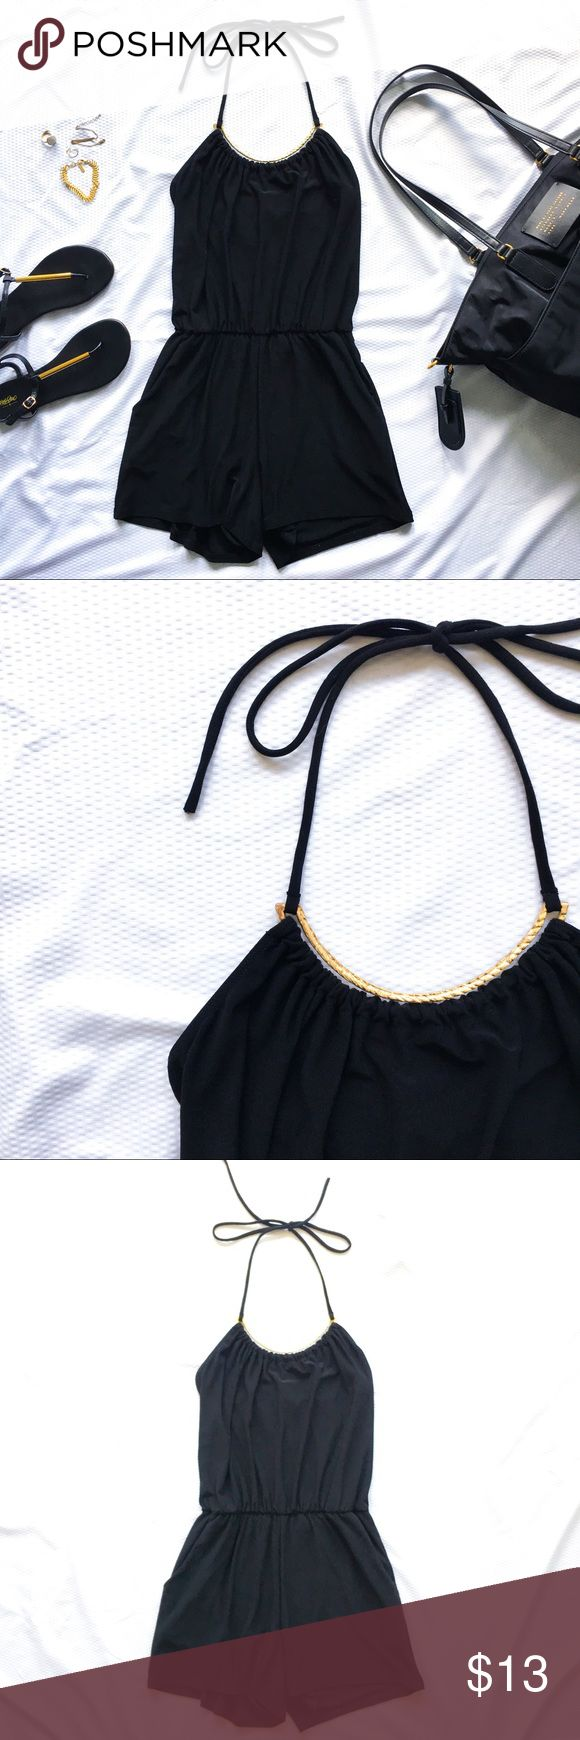 Black and gold halter romper A romper with pockets. That's black.  With a hint of gold trim. And stretchy. What a stellar combination!? Great condition, only flaw is the gold metal trim at neck has a slight bend in it (pictured)   *Read closet guidelines before purchase, thank you! 🖤 Charlotte Russe Dresses